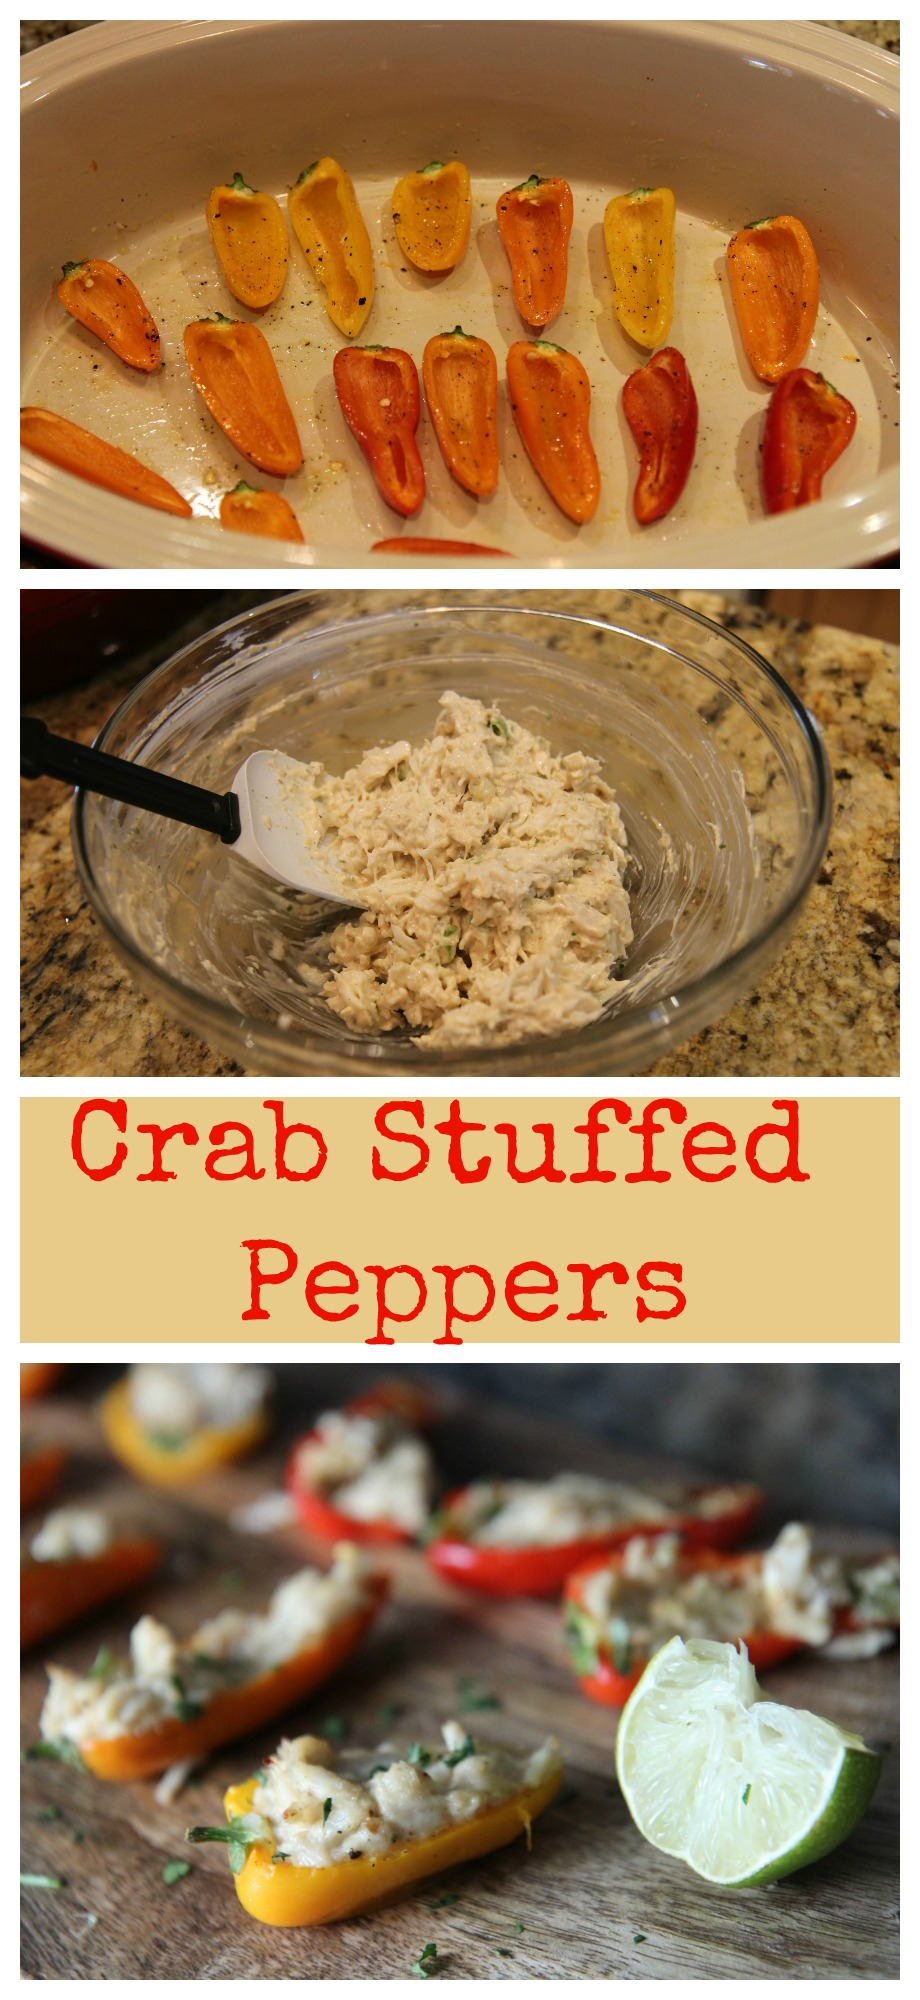 Learn how to make these Crab Stuffed Peppers at CookedbyJulie.com